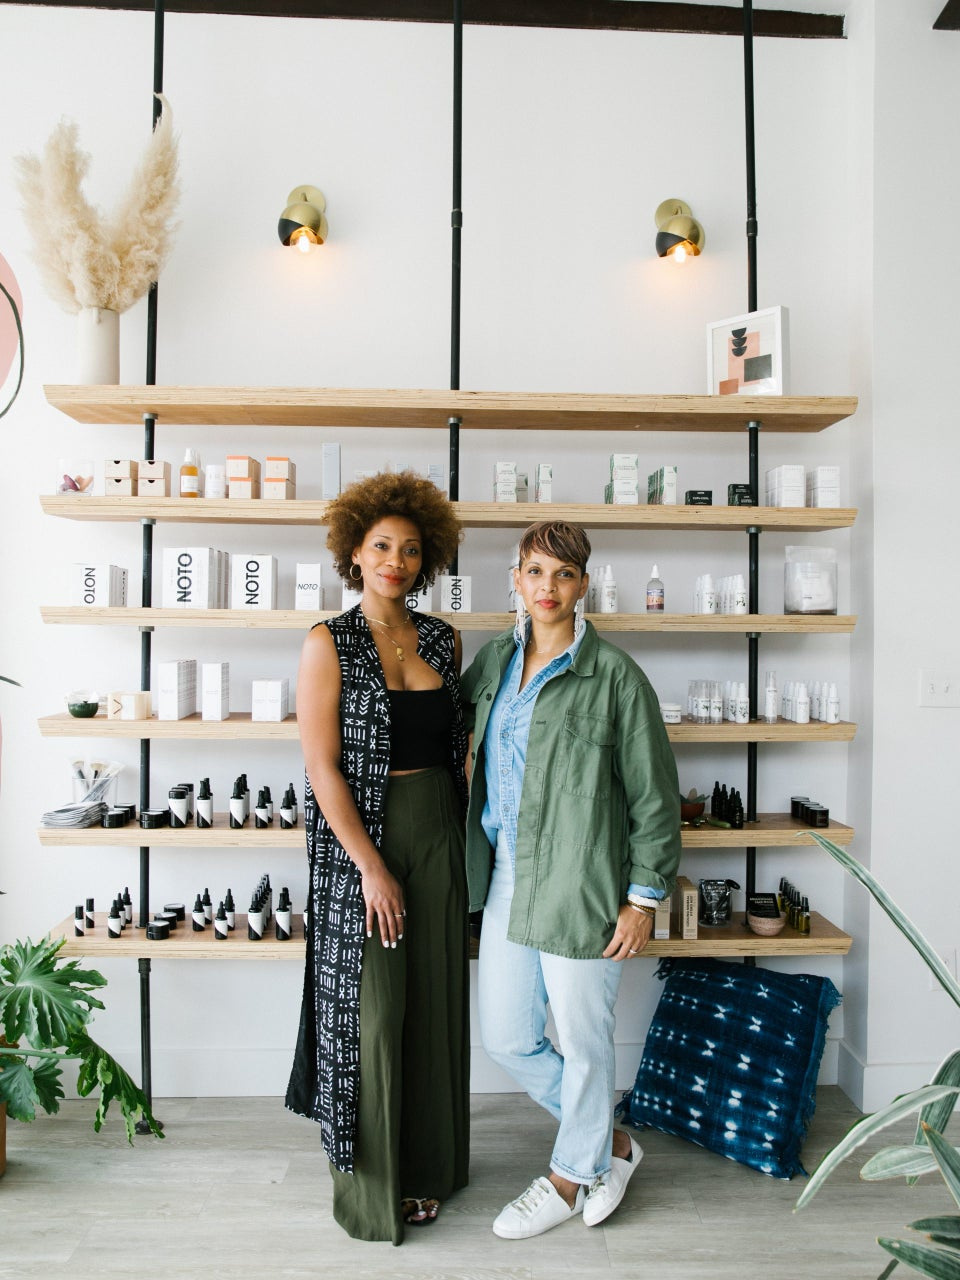 #WeStanForHer: Barefoot and New Voices Foundation Award Grants To 6 Black-Owned Beauty Businesses